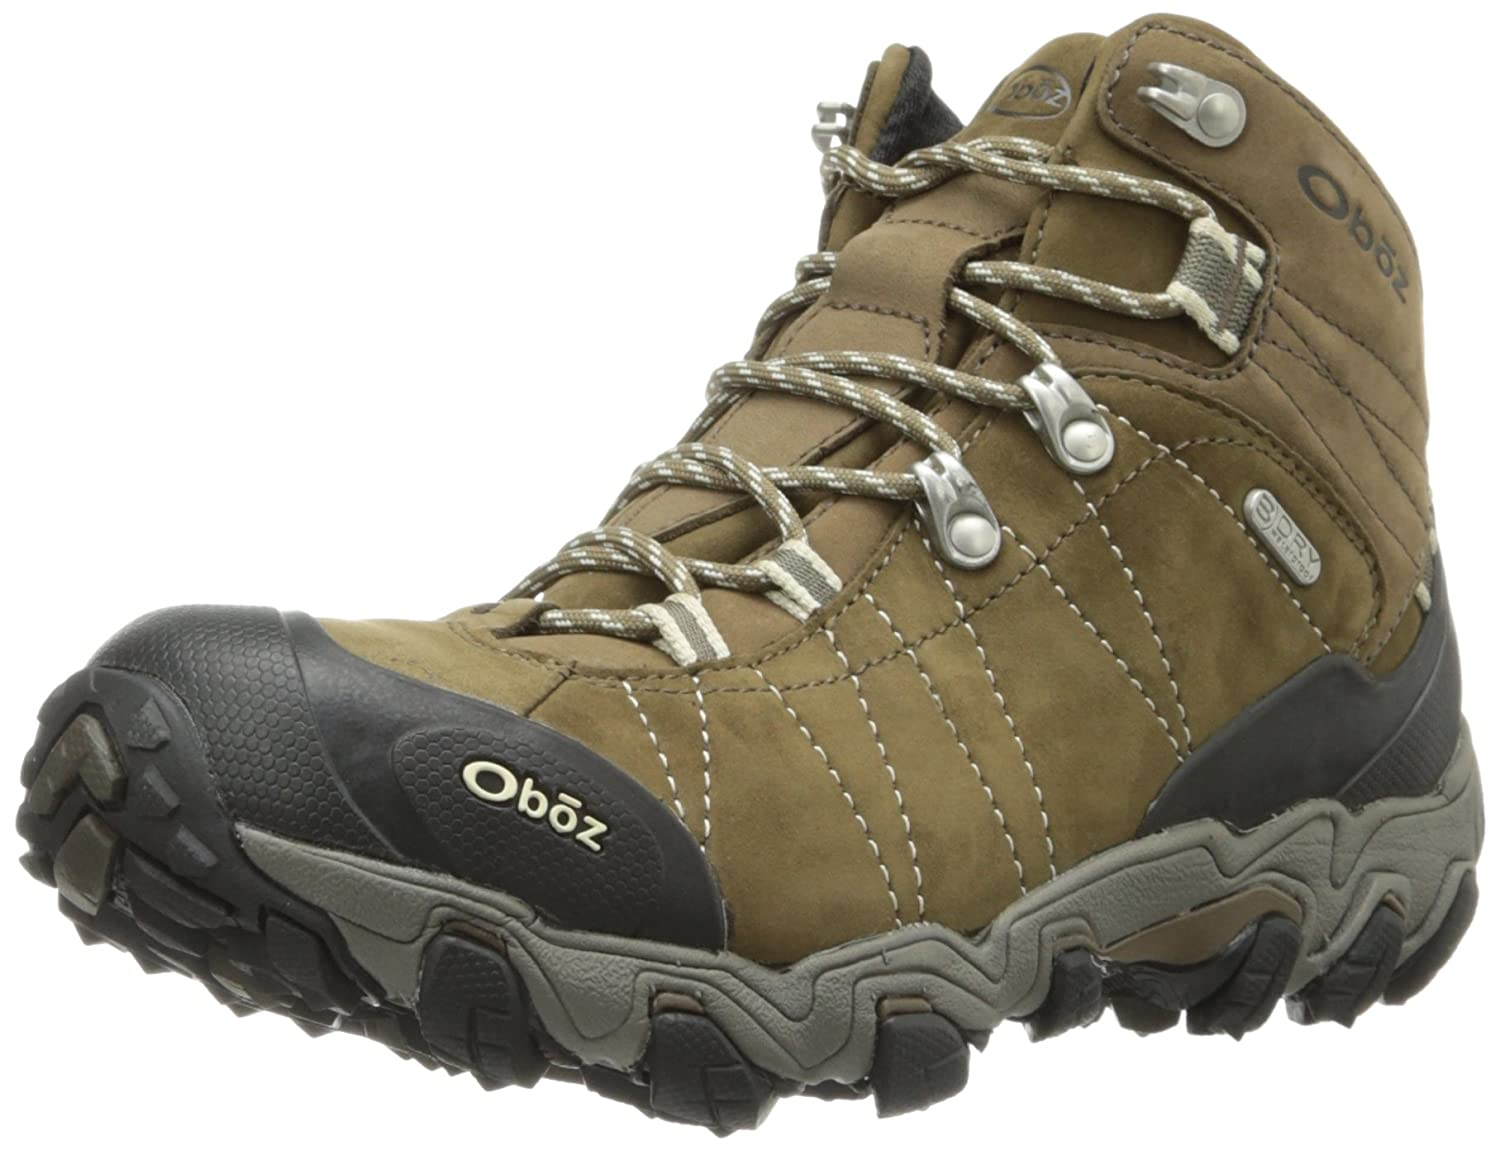 Oboz Women's Bridger B-DRY Hiking 10|WALNUT Boot B01N6X03UG 10|WALNUT Hiking e7c656